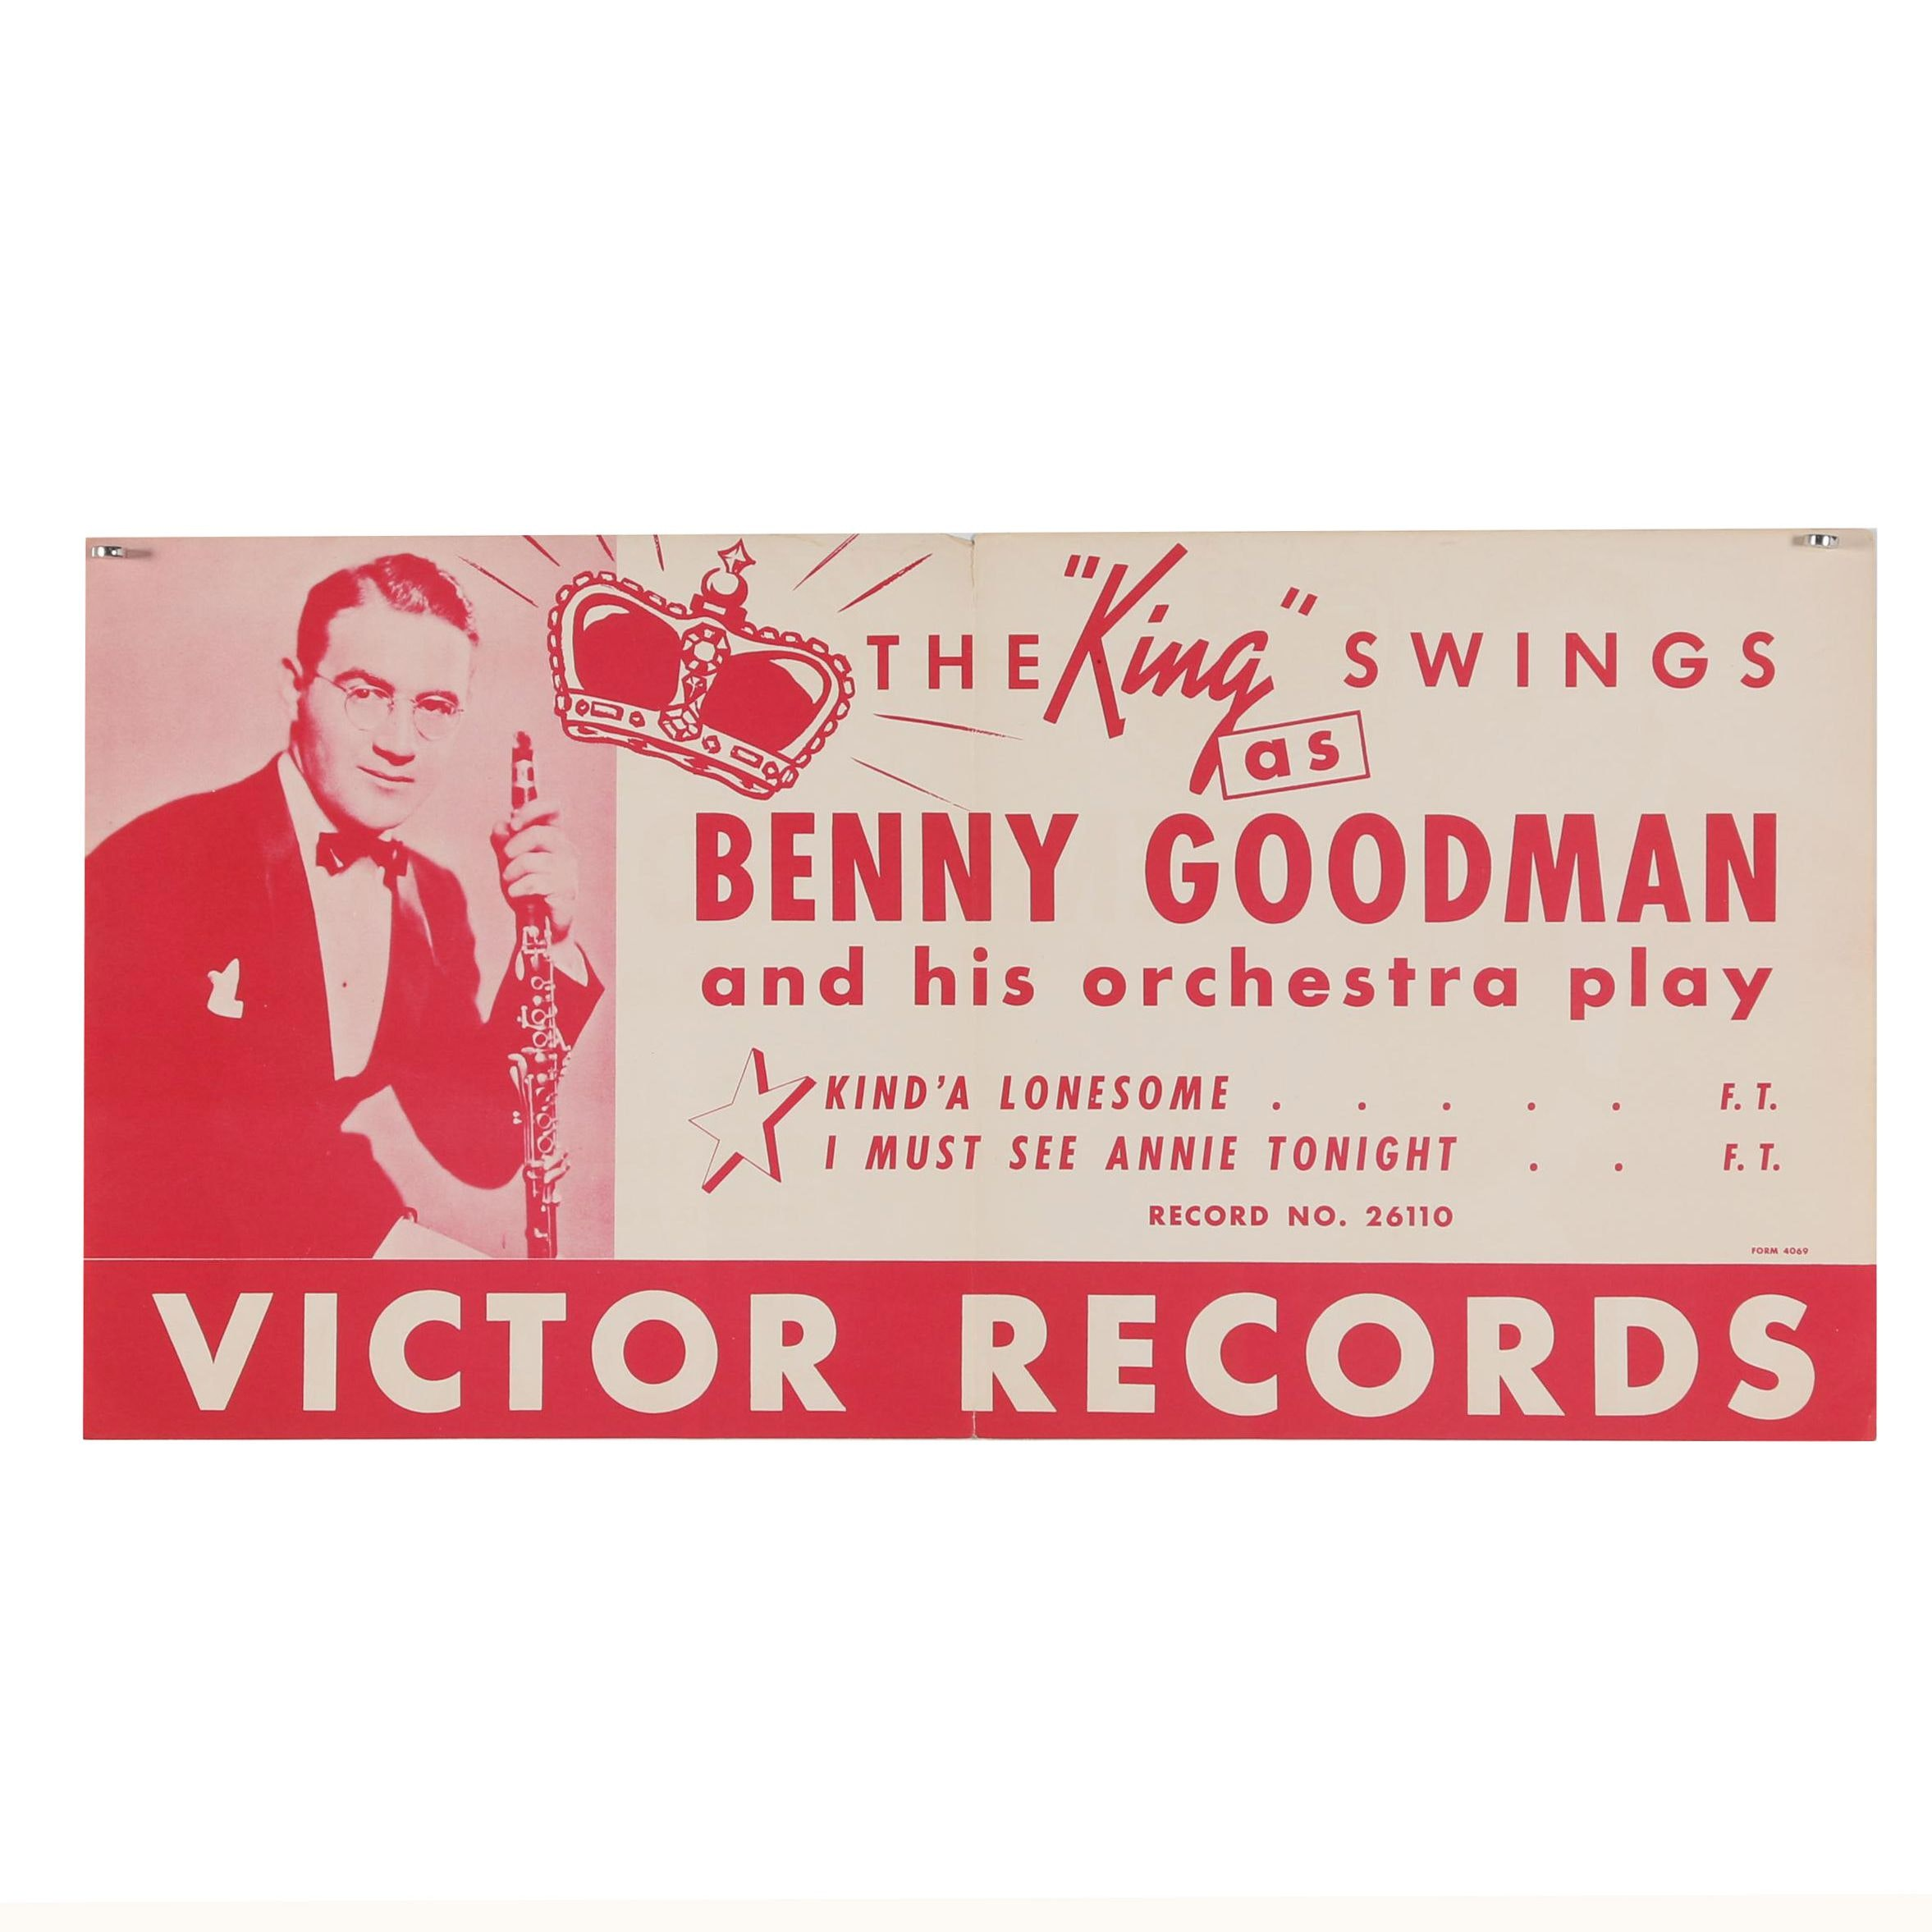 Benny Goodman and His Orchestra Promotional Poster